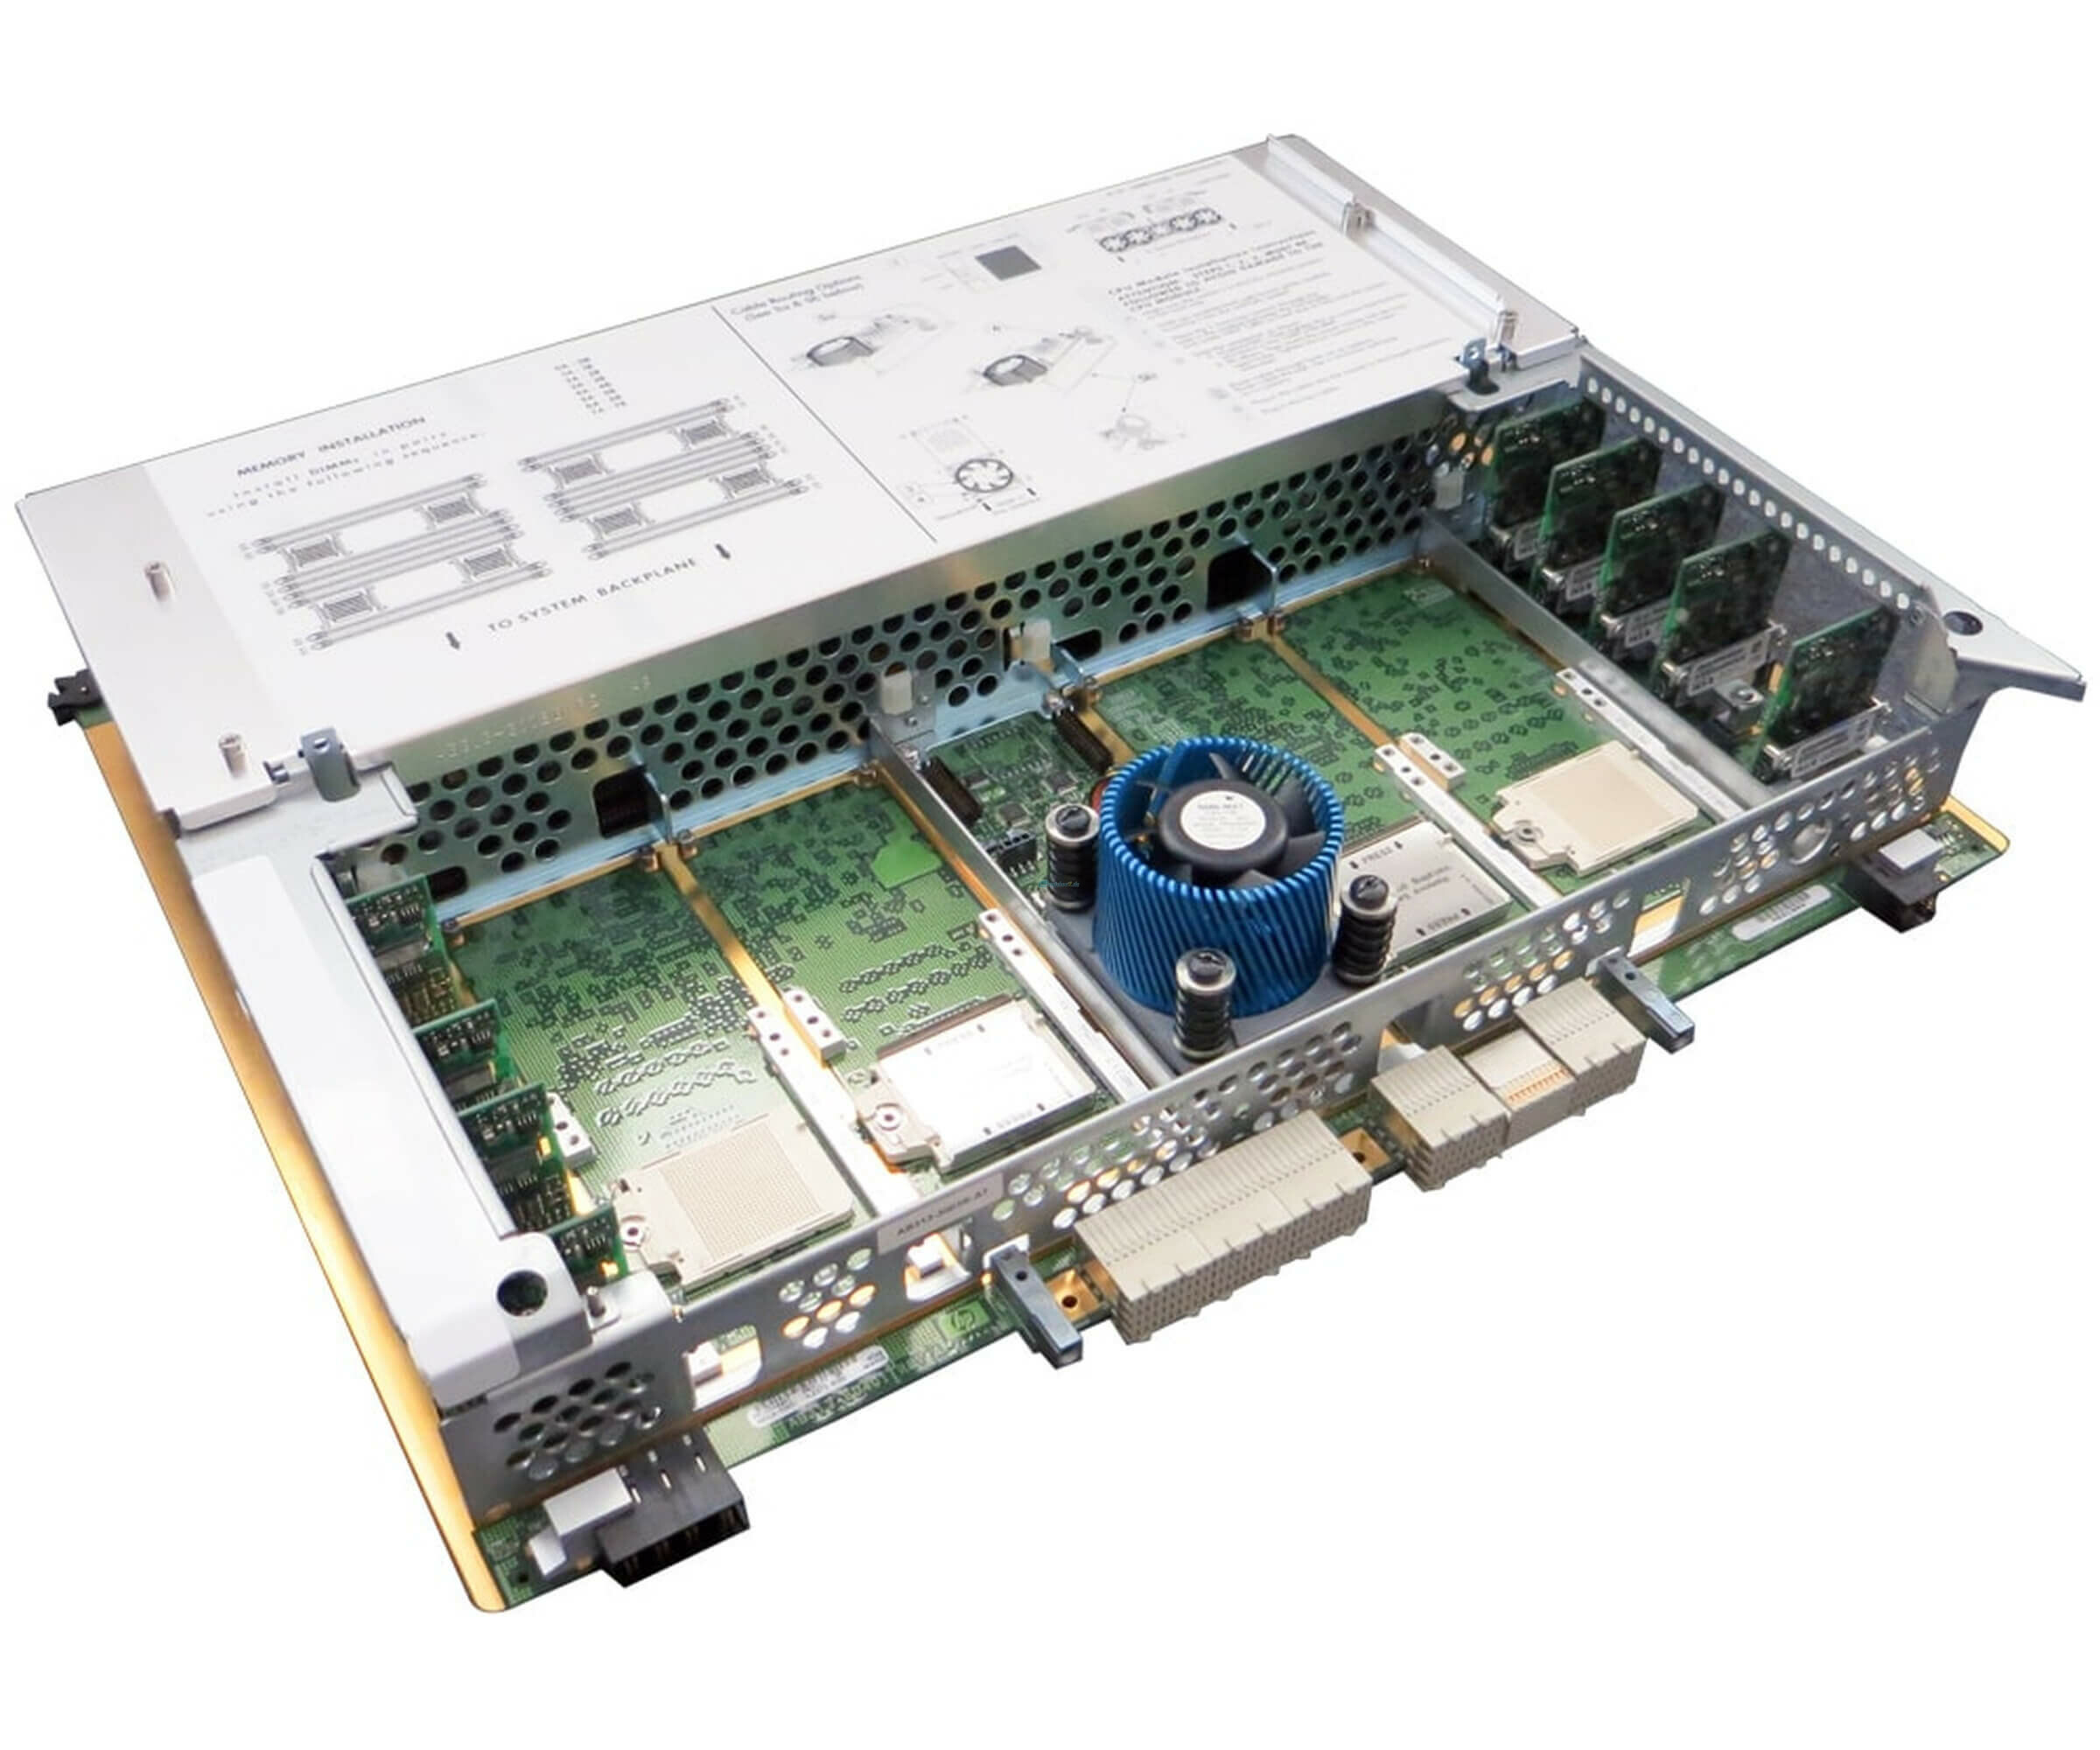 Mainboards - HP Integrity RX7640 RX8640 Motherboard AB313 0008A inklusive HP 3AC1 0005 CPU  - Onlineshop Noteboox.de